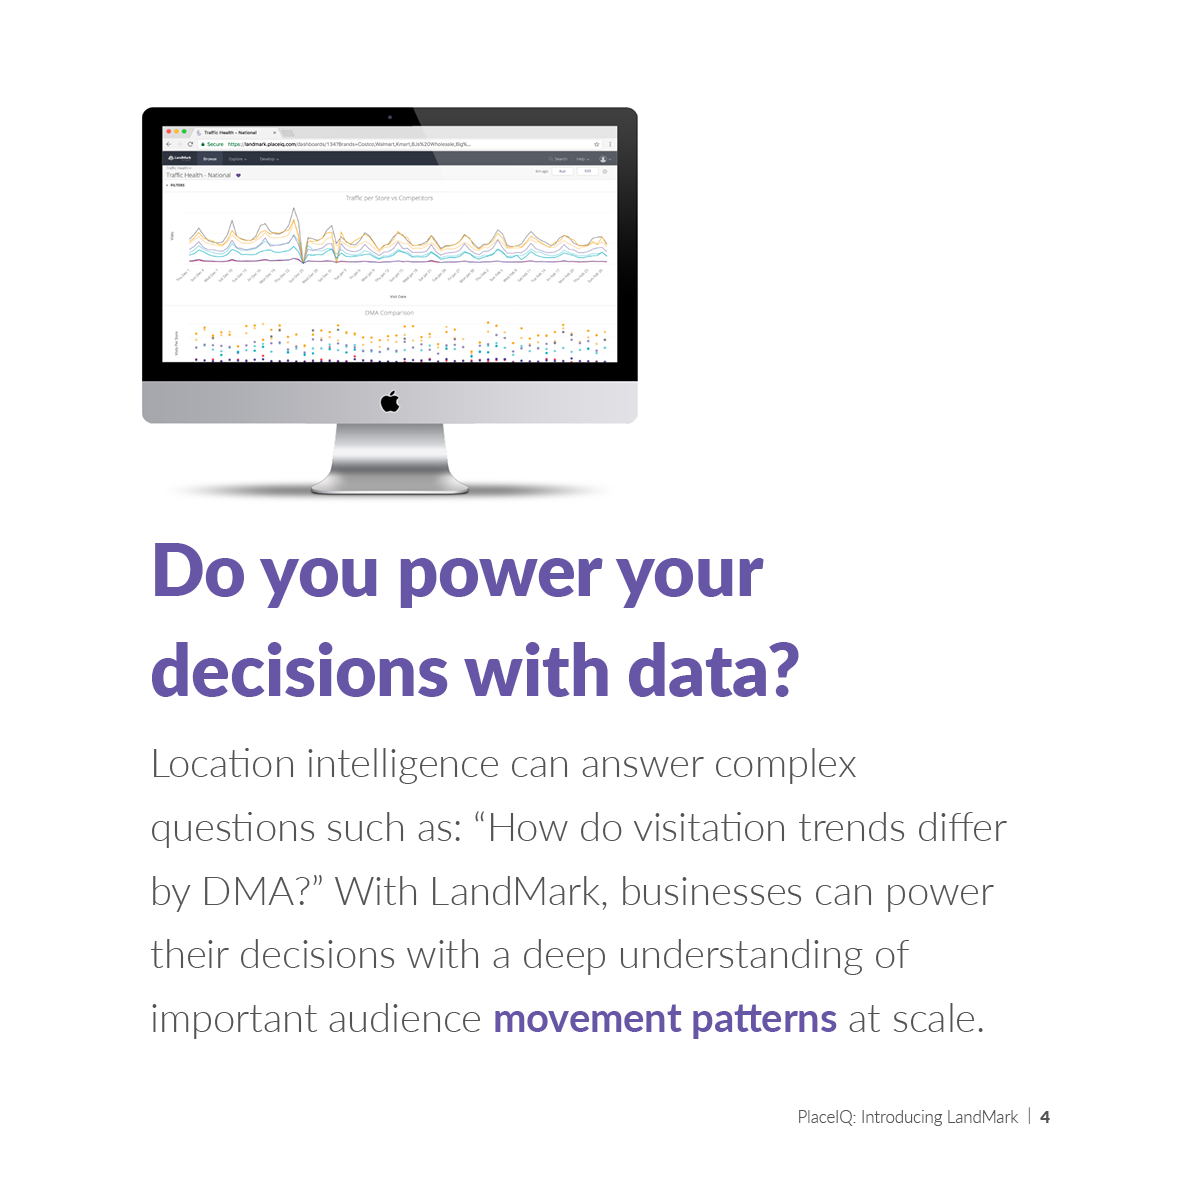 Do you power your decisions with data?